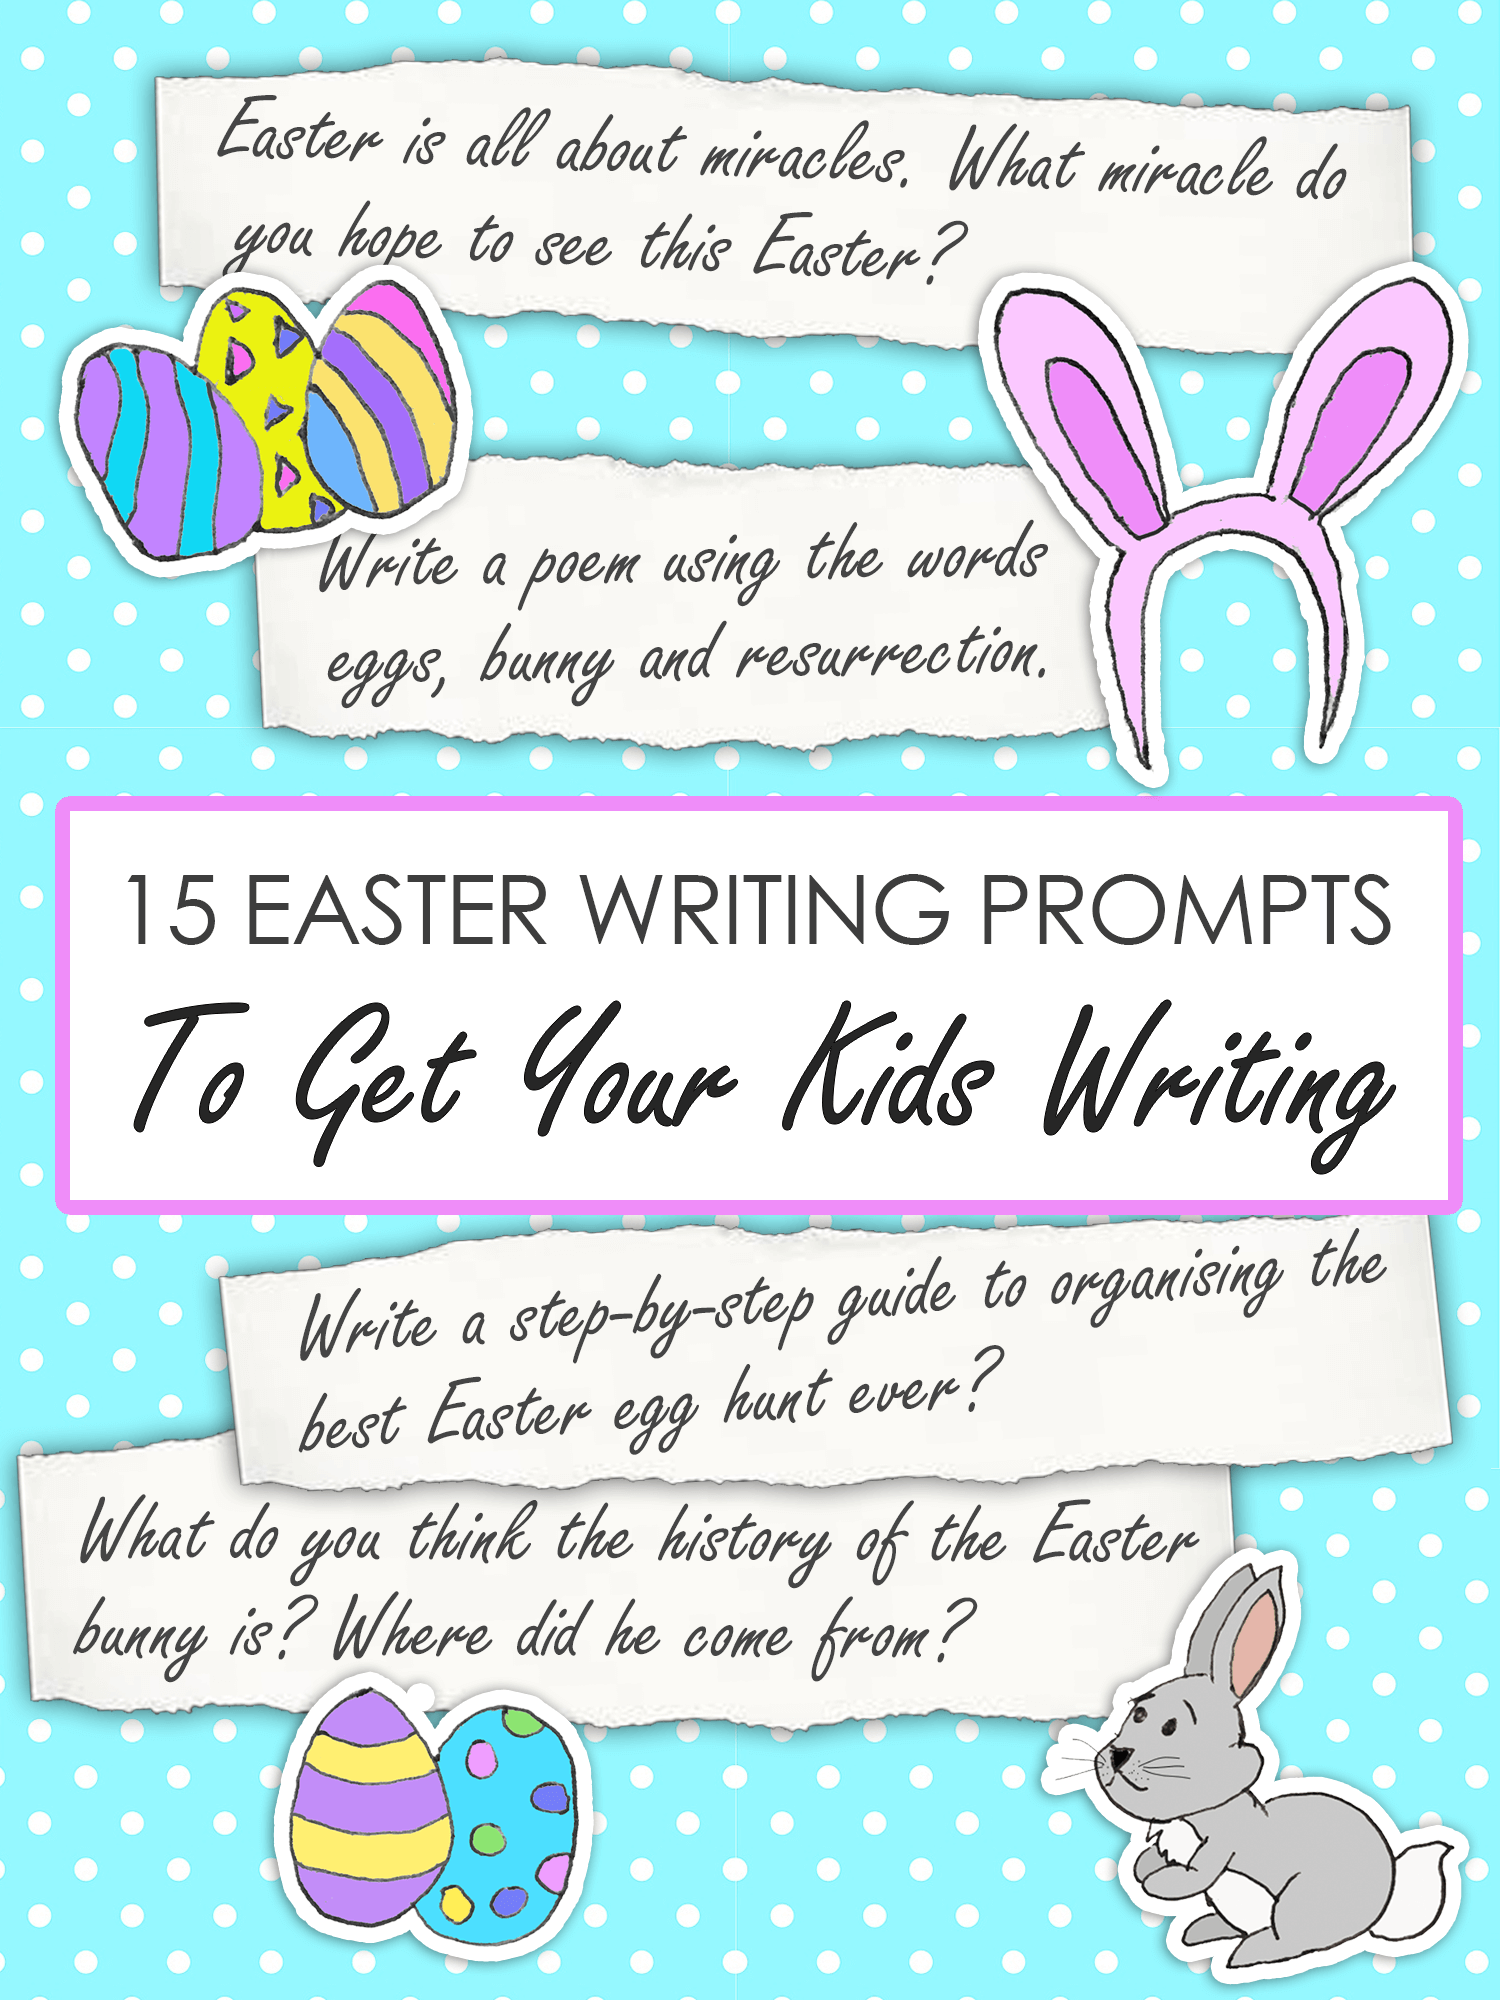 15 Easter Writing Prompts to Get Your Kids Writing imagine forest